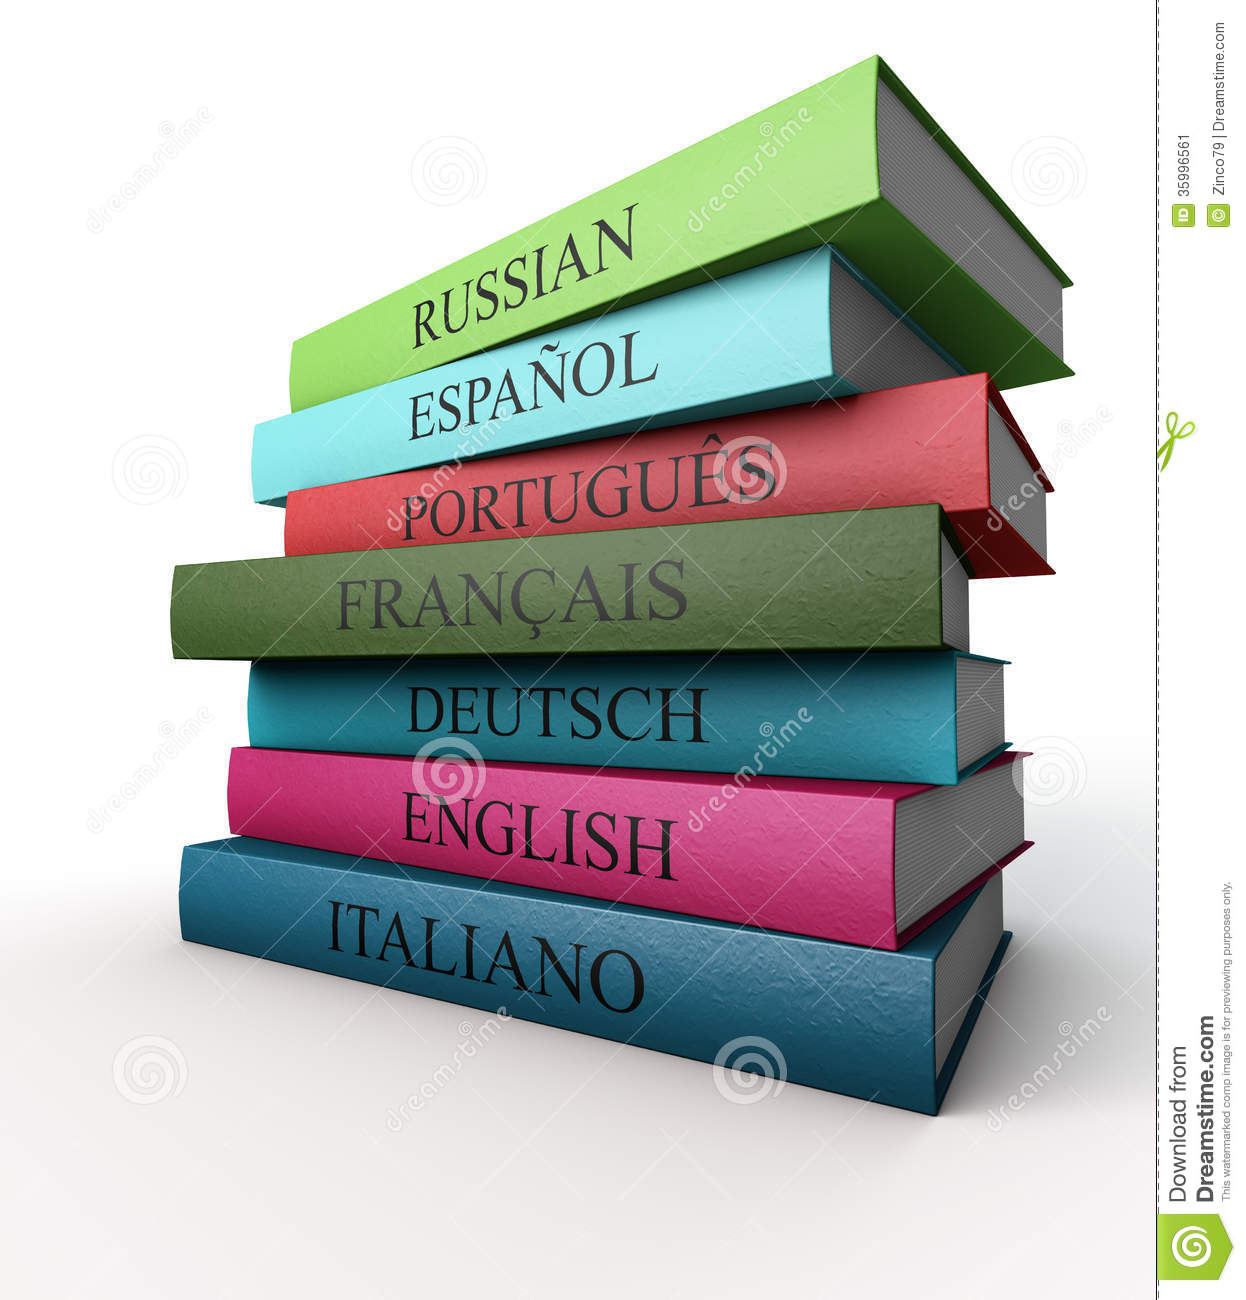 Spanish portuguese portuguese spanish dictionary advanced downloadable software